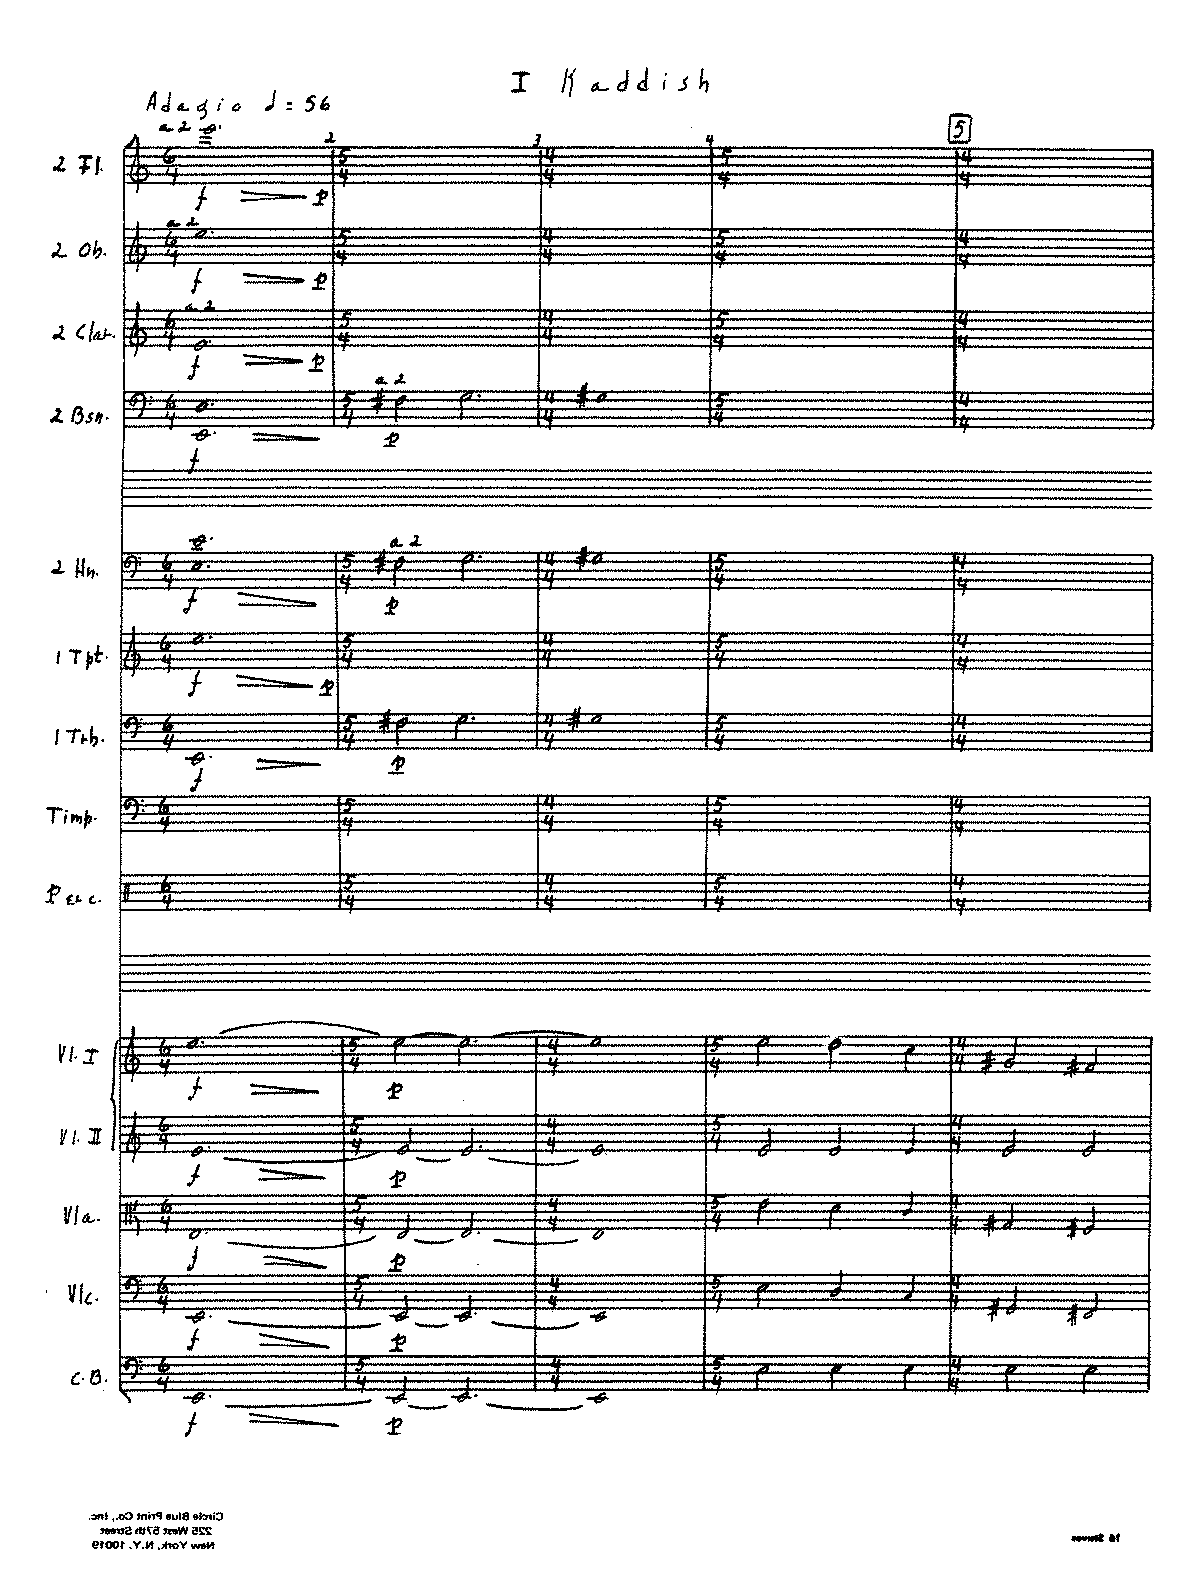 PMLP330628-Tradition score.pdf